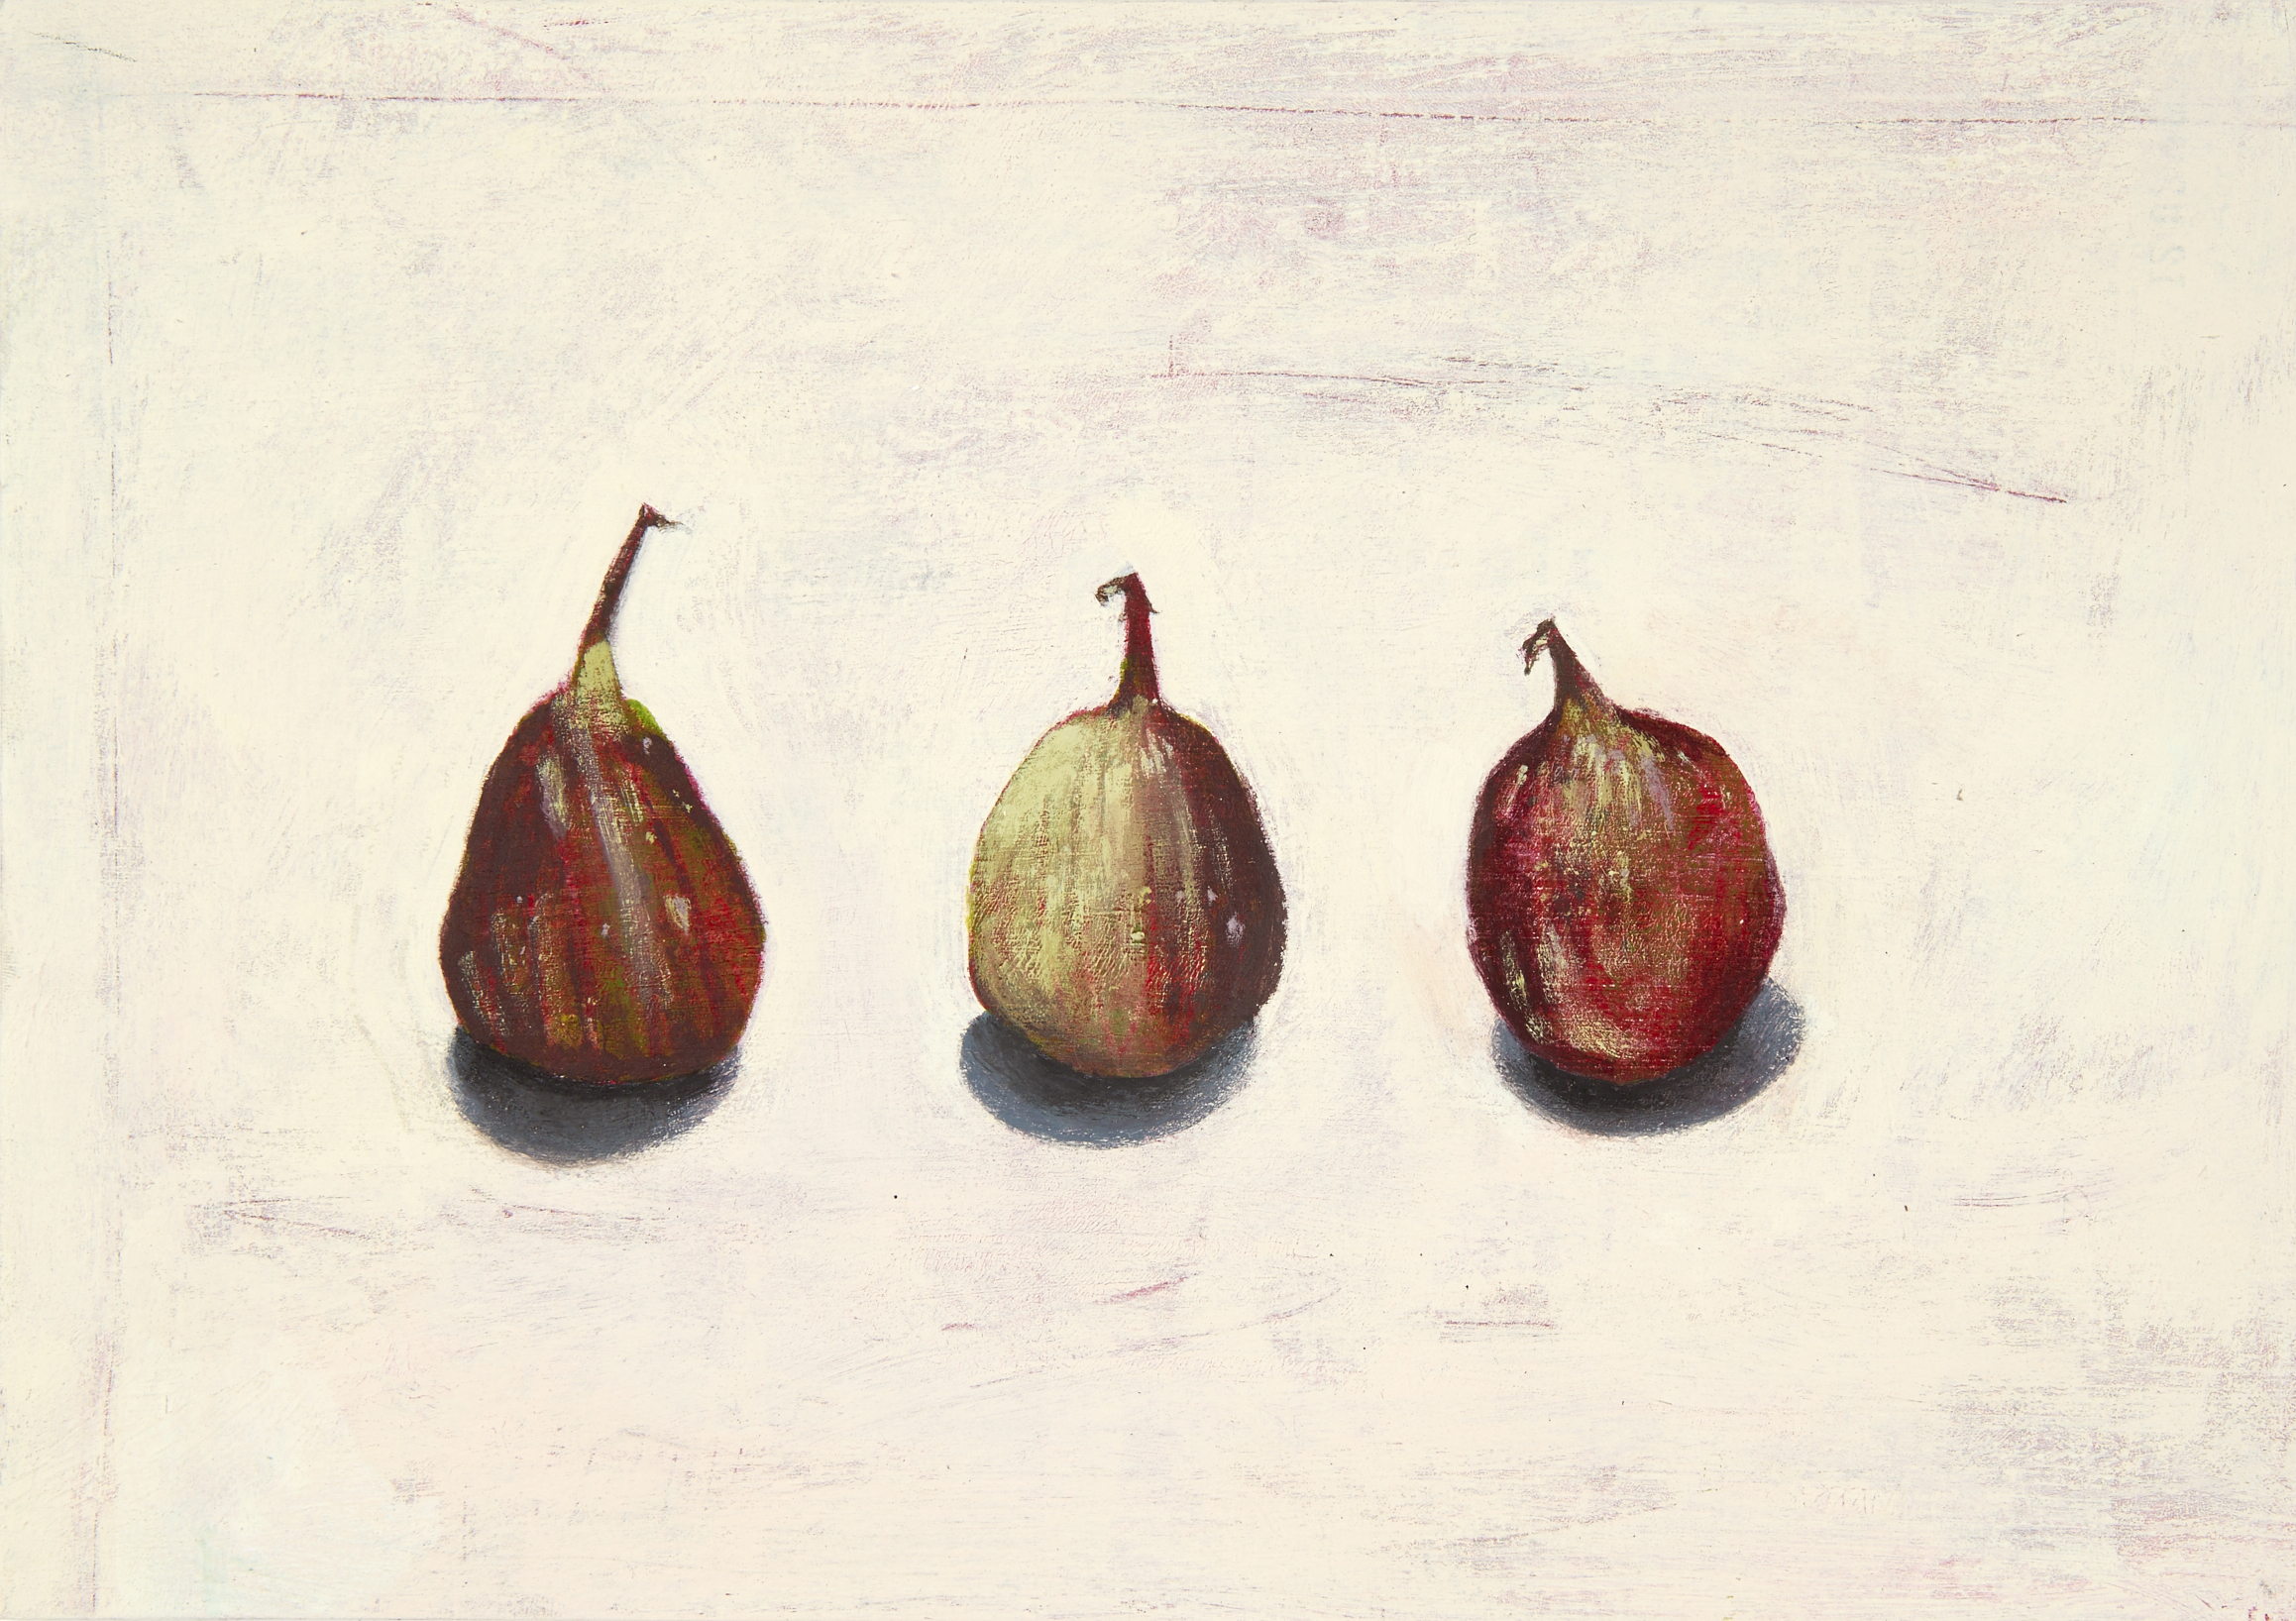 David Lyon Art - Three Figs - 150dpi.jpg